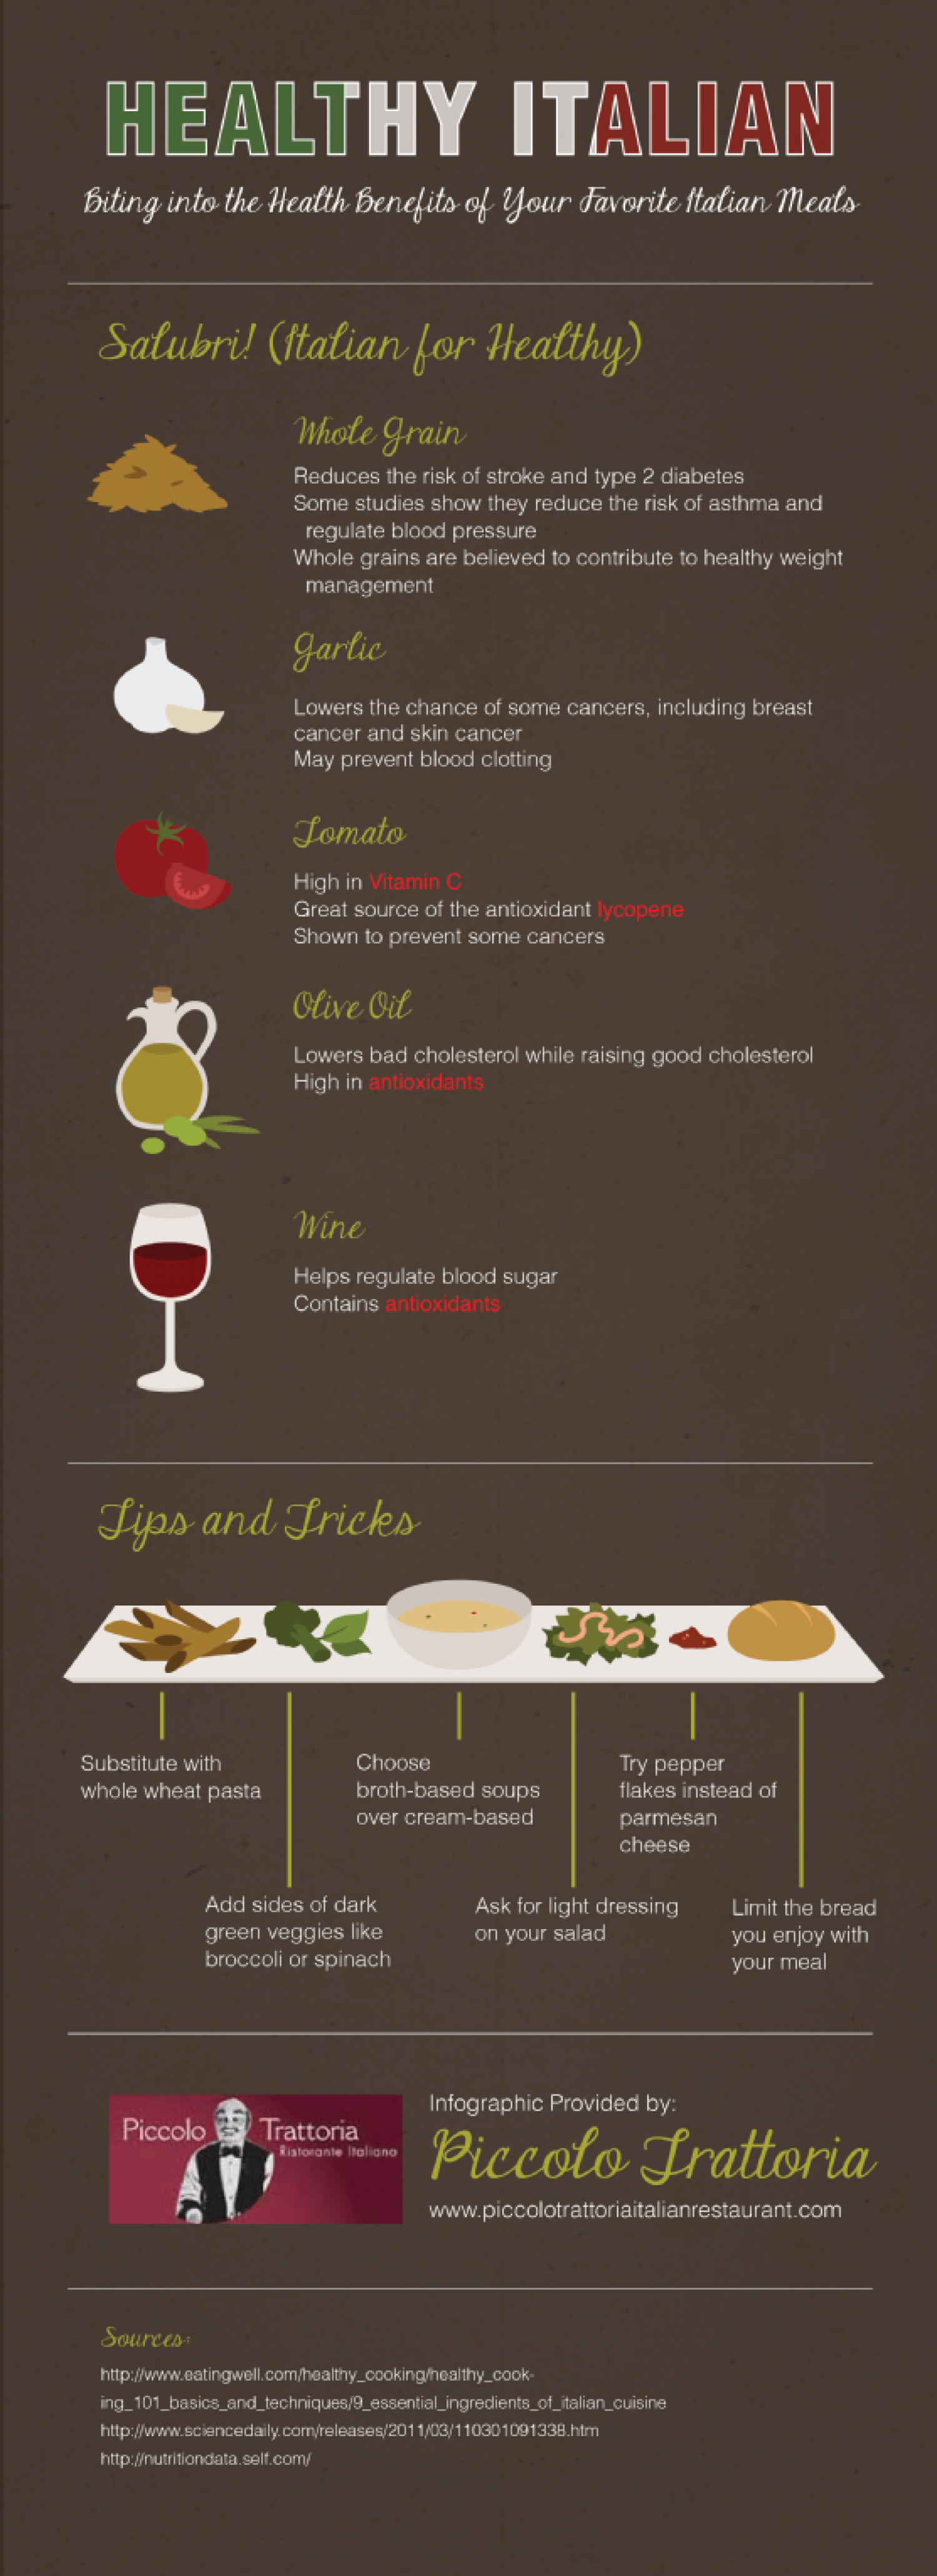 Biting into the Health Benefits of Your Favorite Italian Meals  Infographic